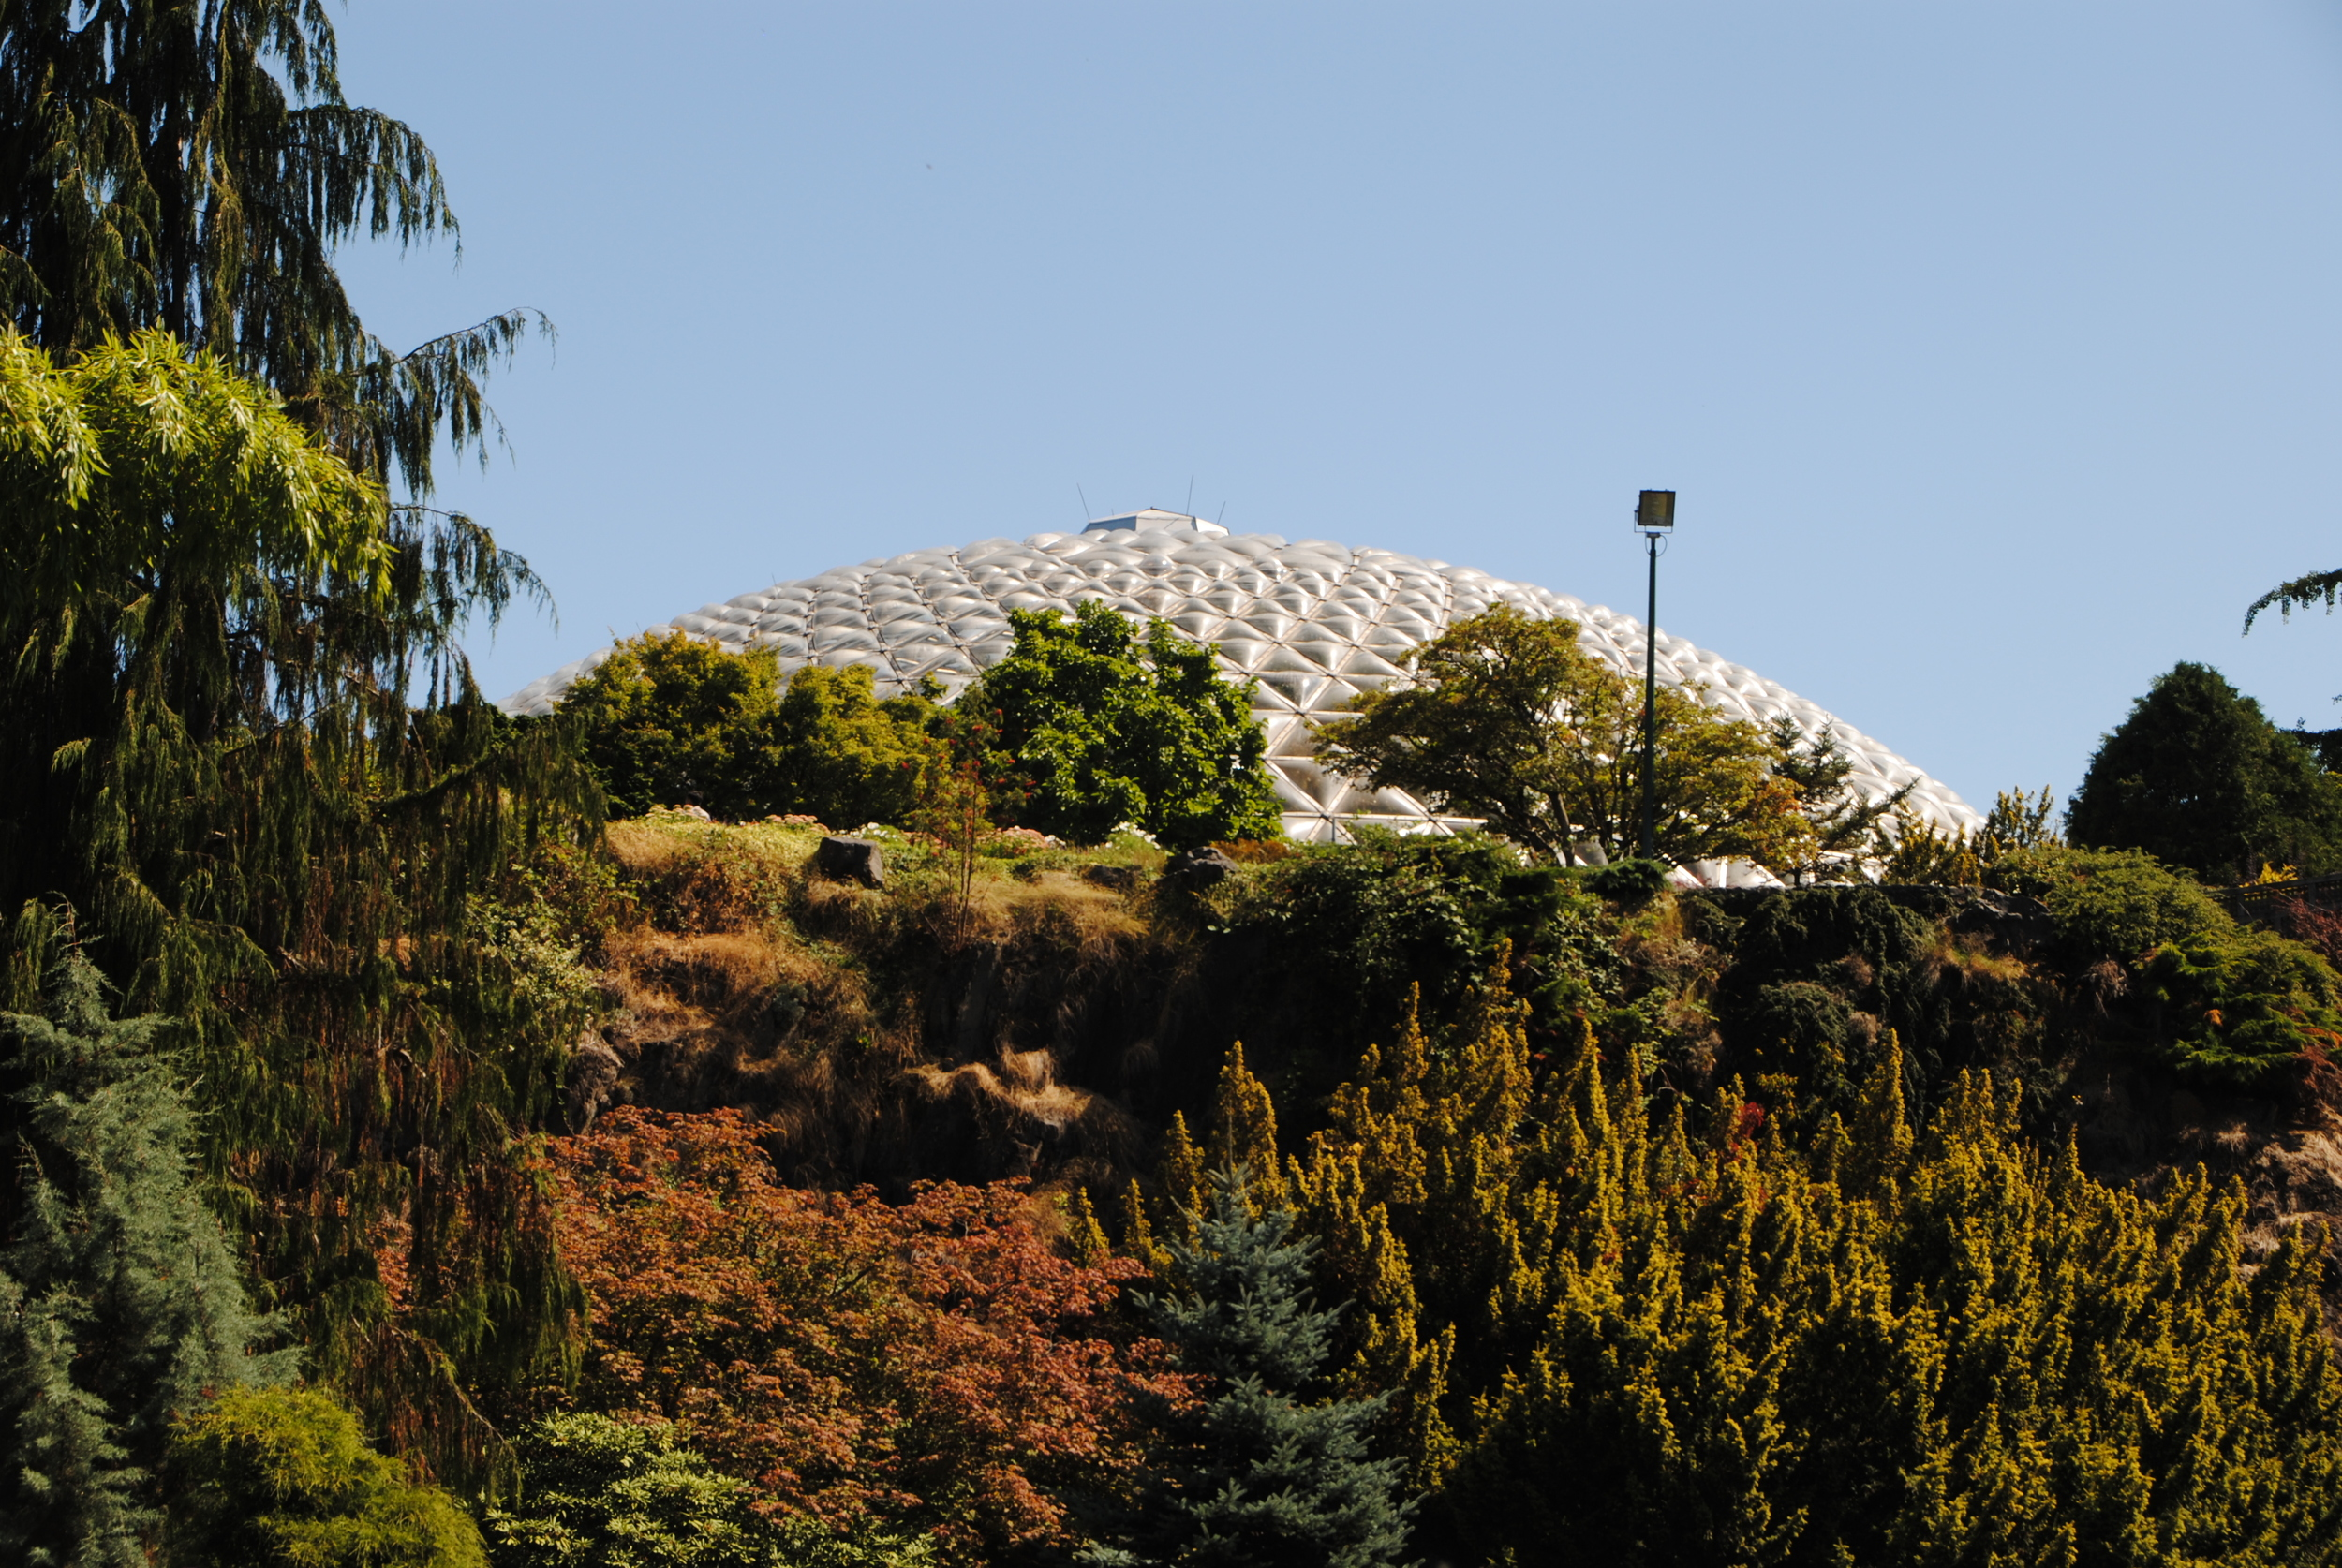 The dome of the Bloedel Conservatory.